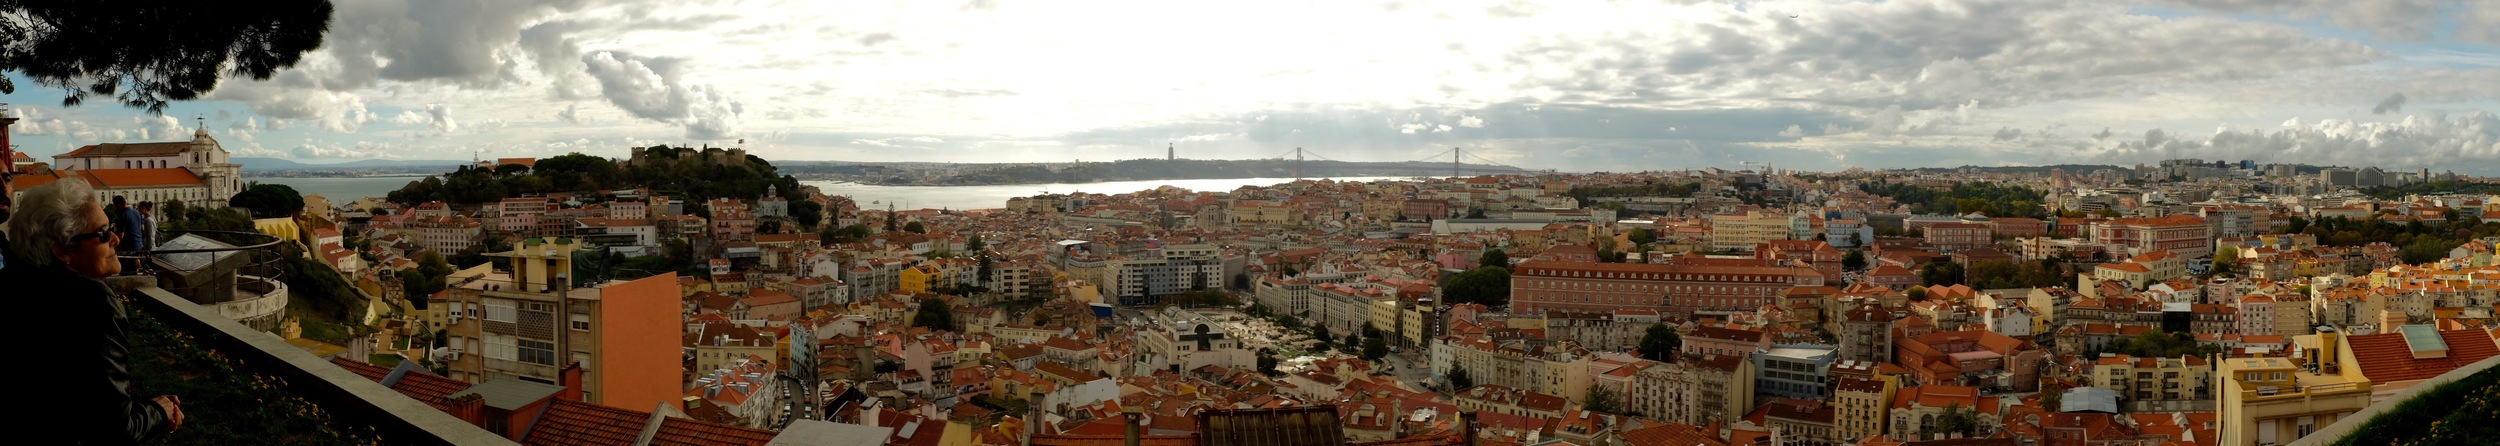 Lisbon cityscape from a viewpoint -in the distance you can see the 'Puente 25 de abril' bridge that looks a bit like Golden Gate bridge in San Francisco. Click to enlarge.